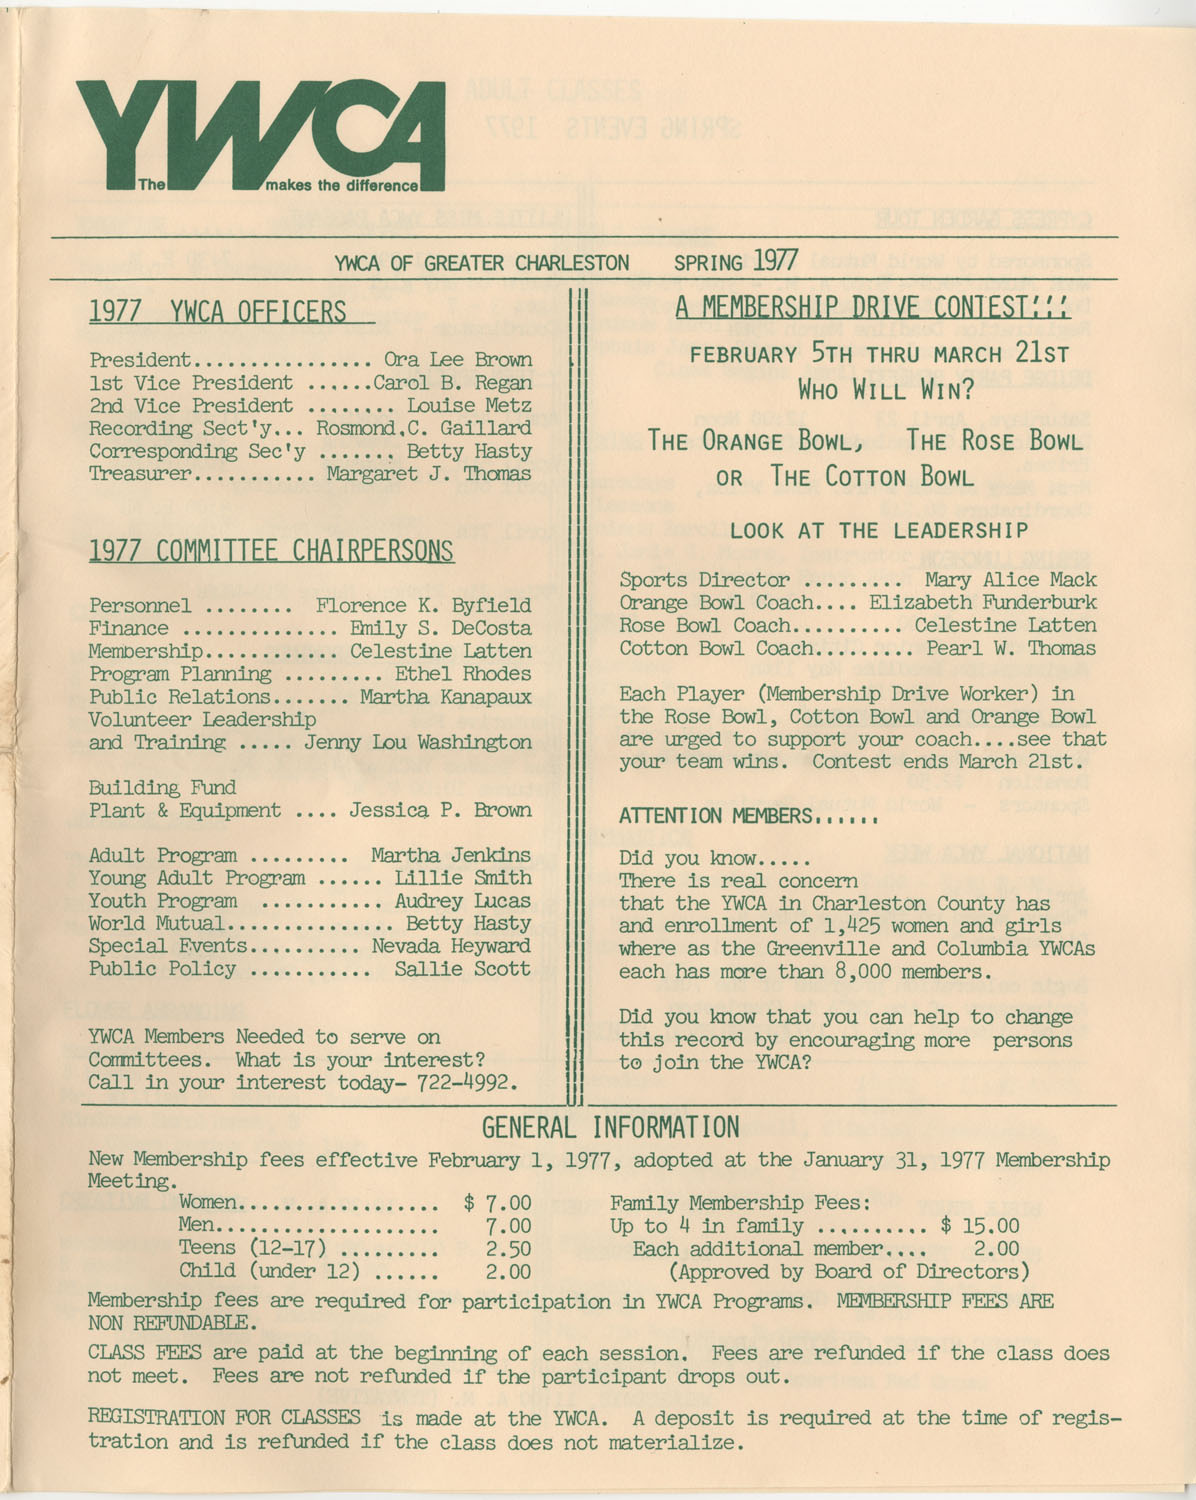 Newsletter, YWCA of Greater Charleston, Spring 1977